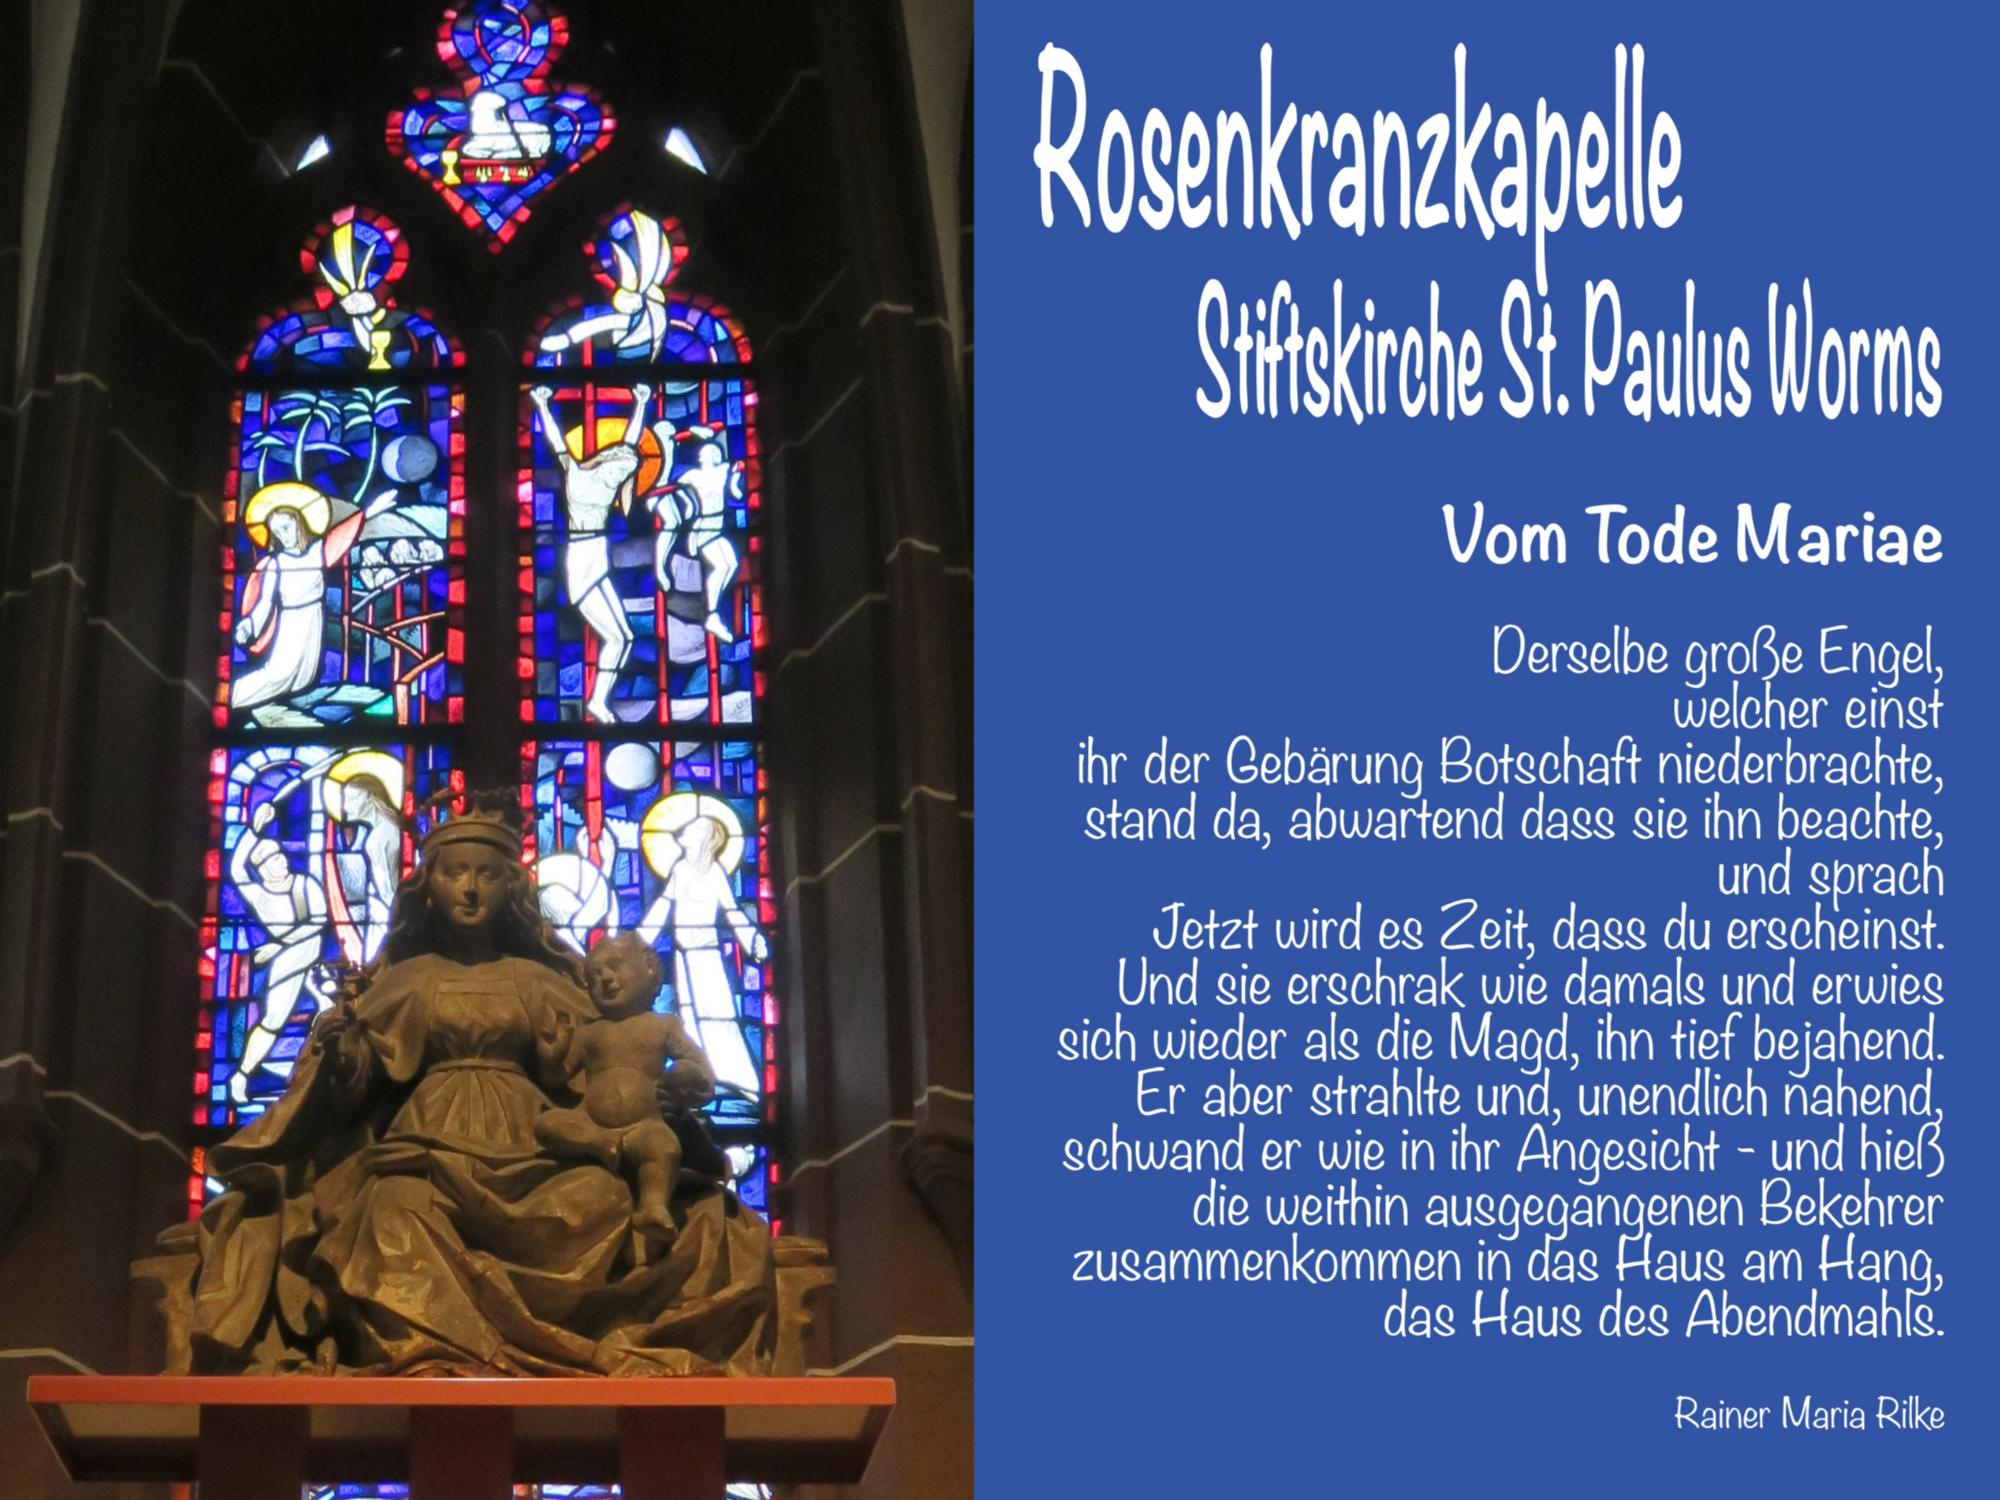 Rosenkranzkapelle (c) Dekanat Worms